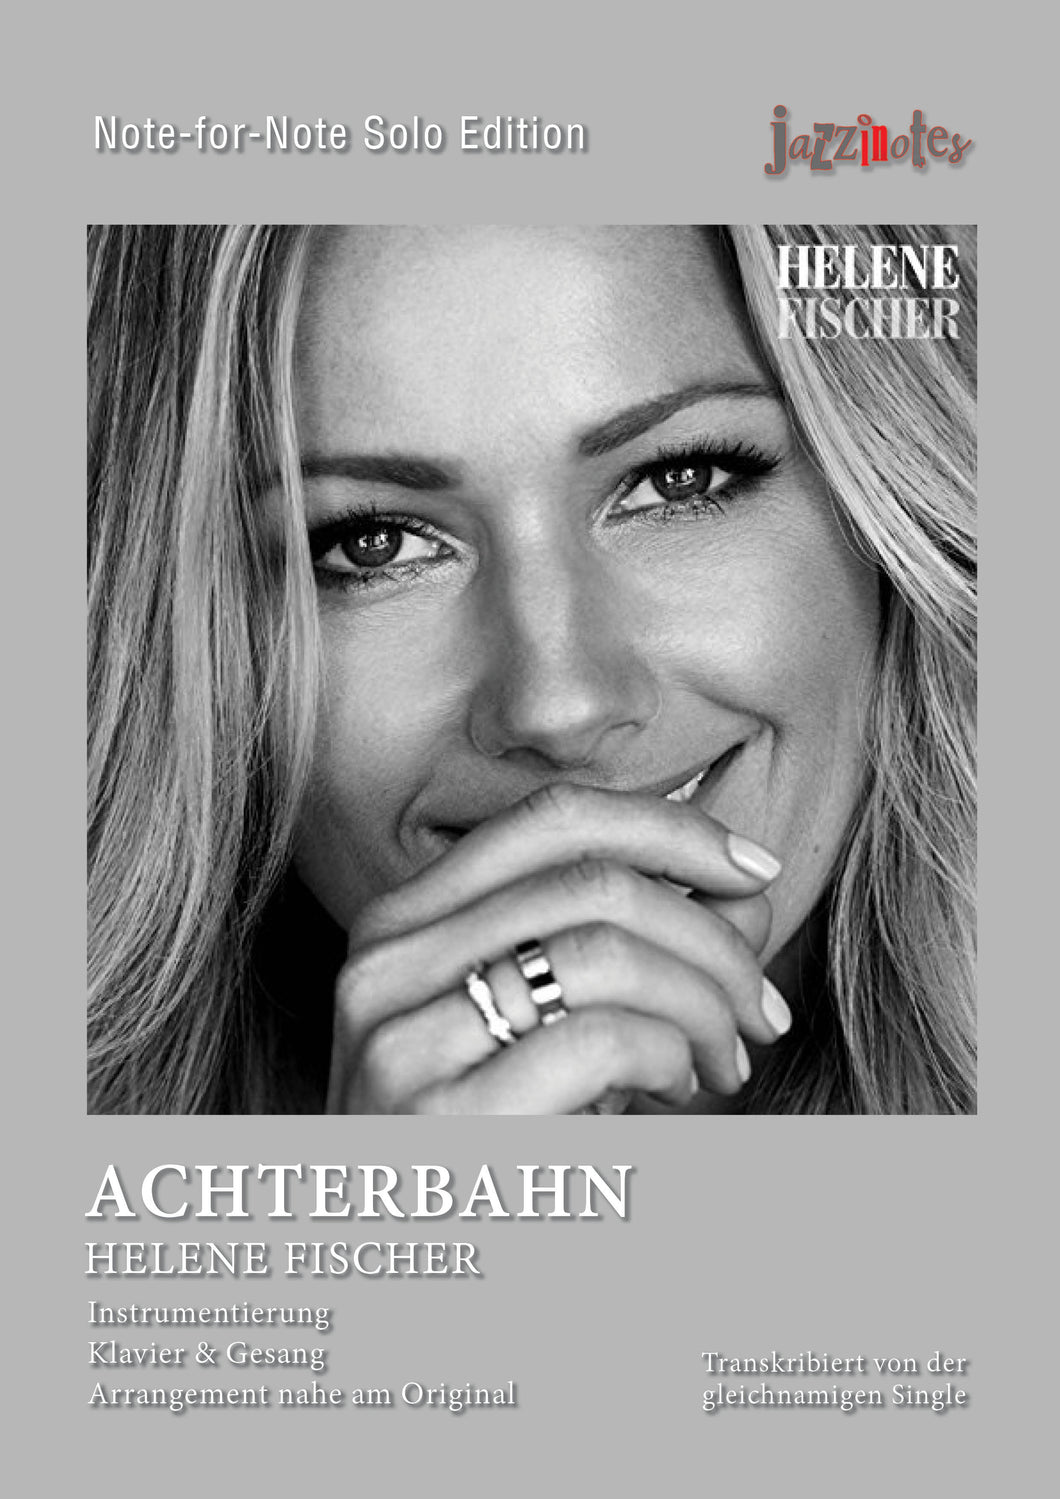 Fischer, Helene: Achterbahn - Sheet Music Download